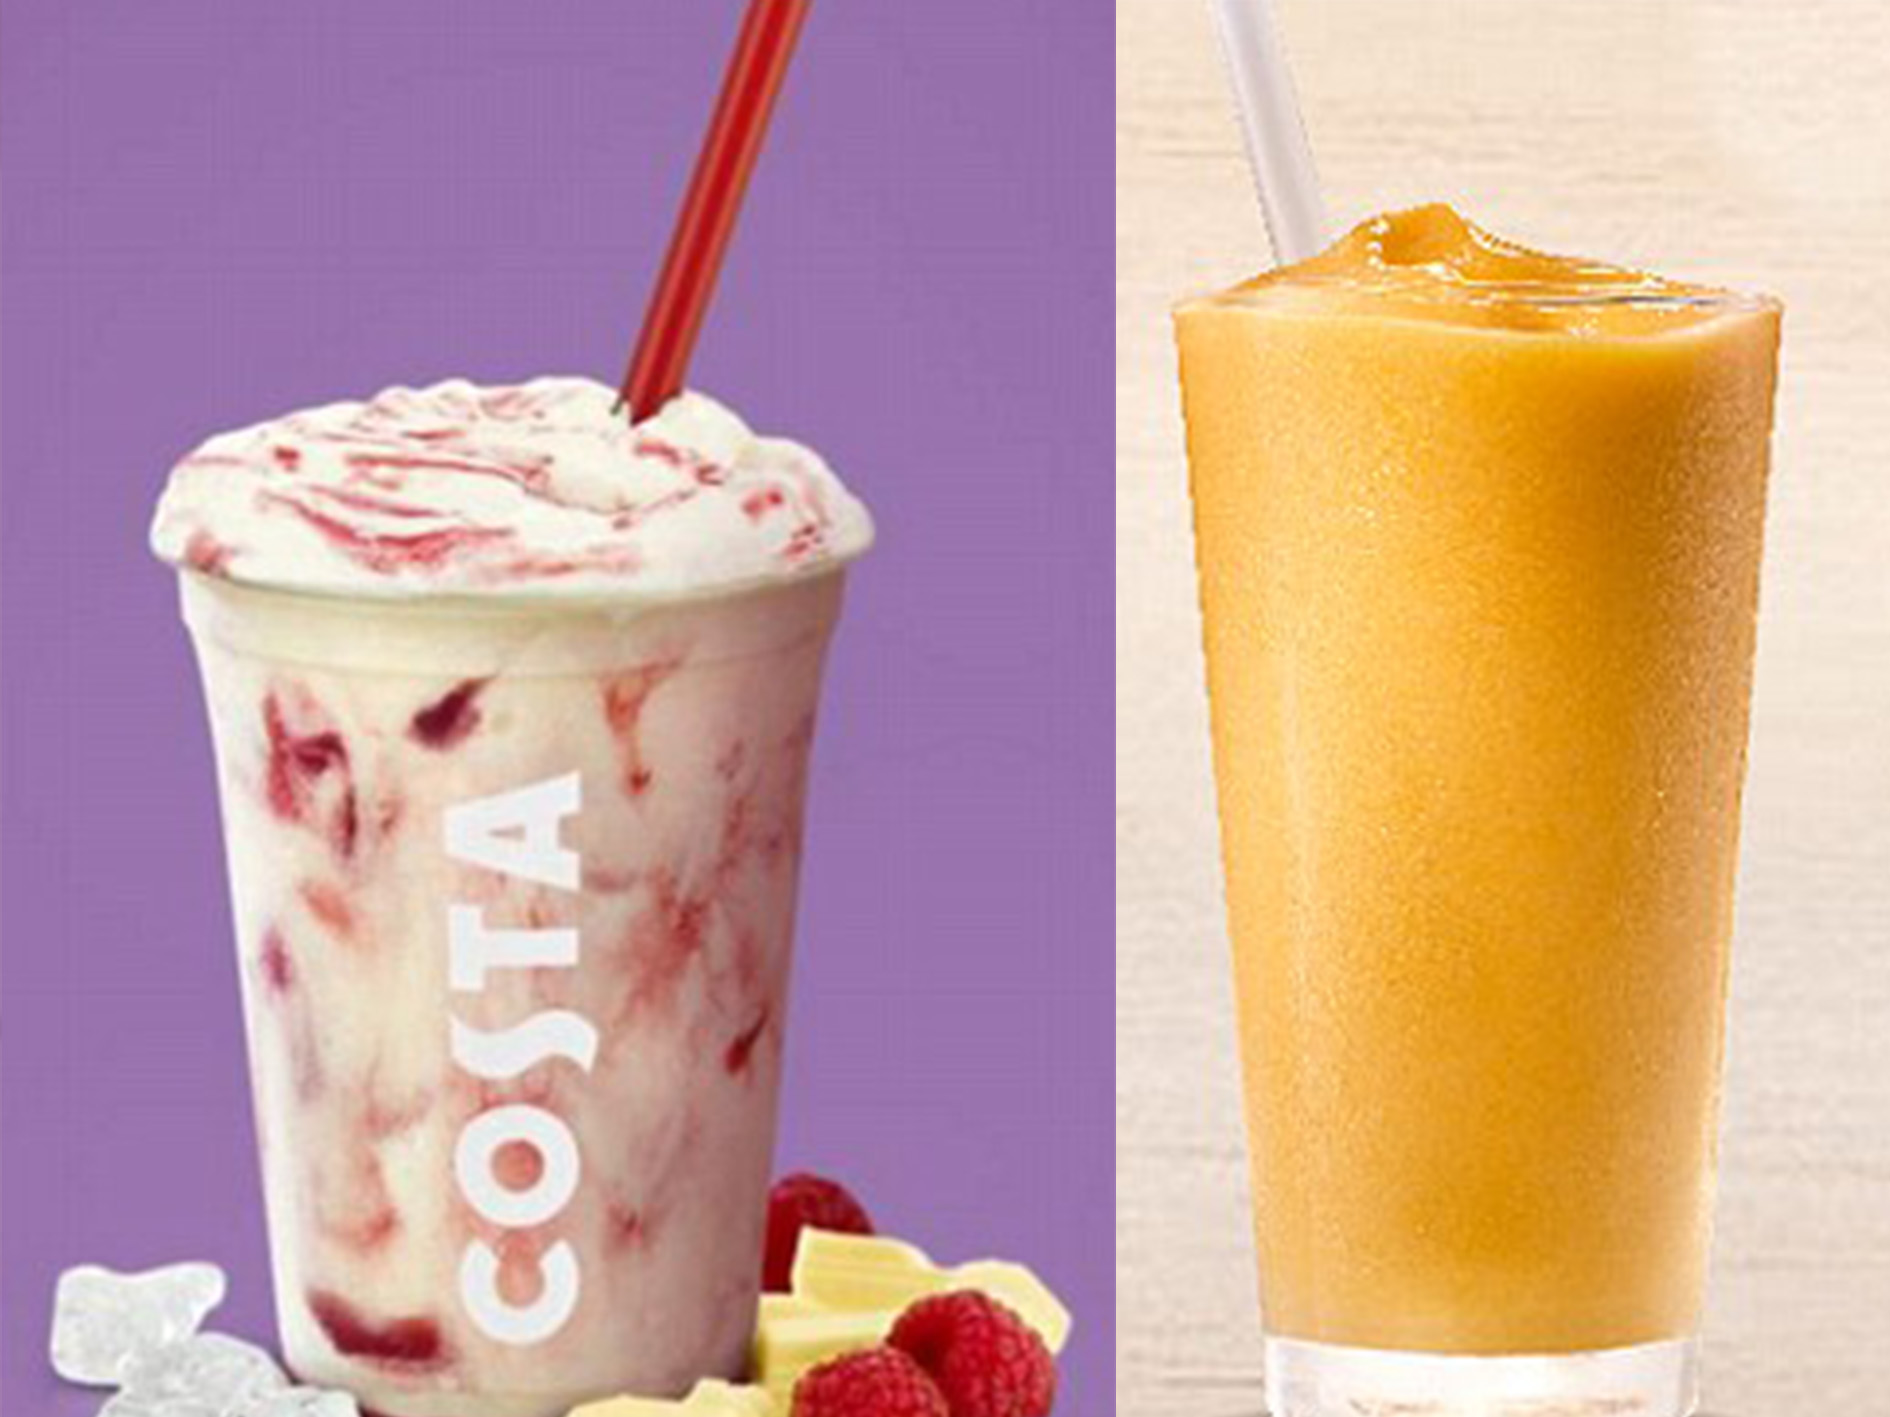 Costa White Chocolate Creamy Cooler and Burger King Tropical Mango Smoothie